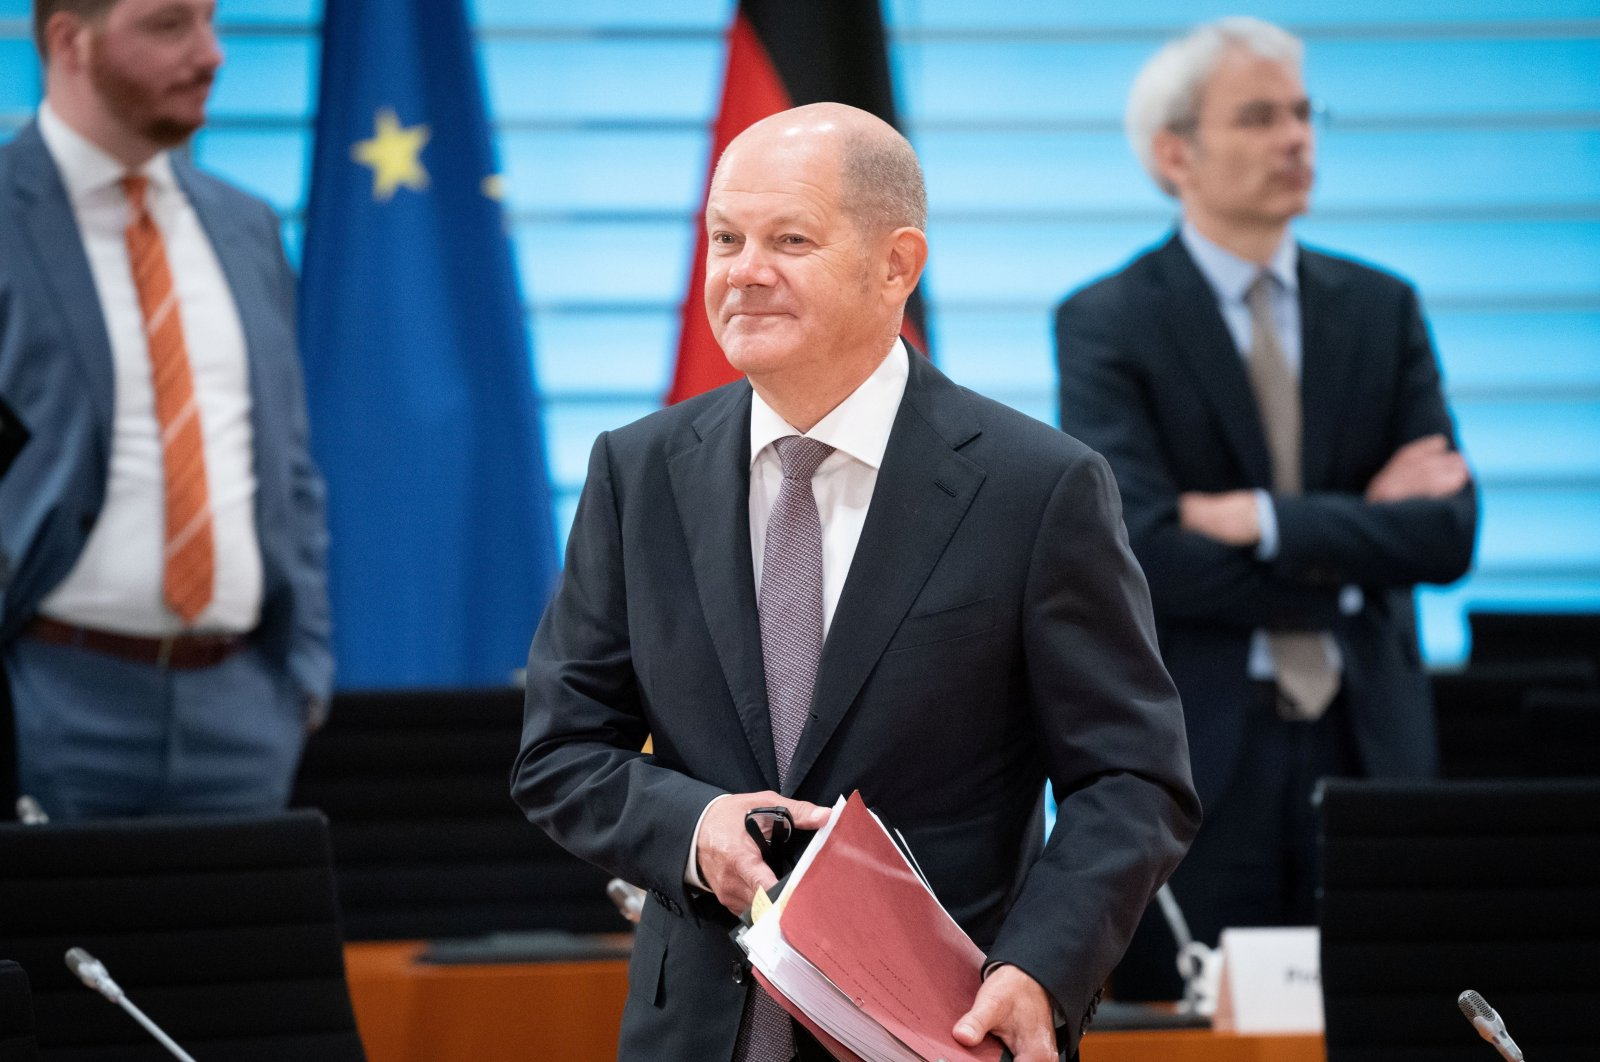 German Finance Minister Olaf Scholz attends the weekly cabinet meeting in Berlin, Germany, Sept. 23, 2020. (Reuters Photo)